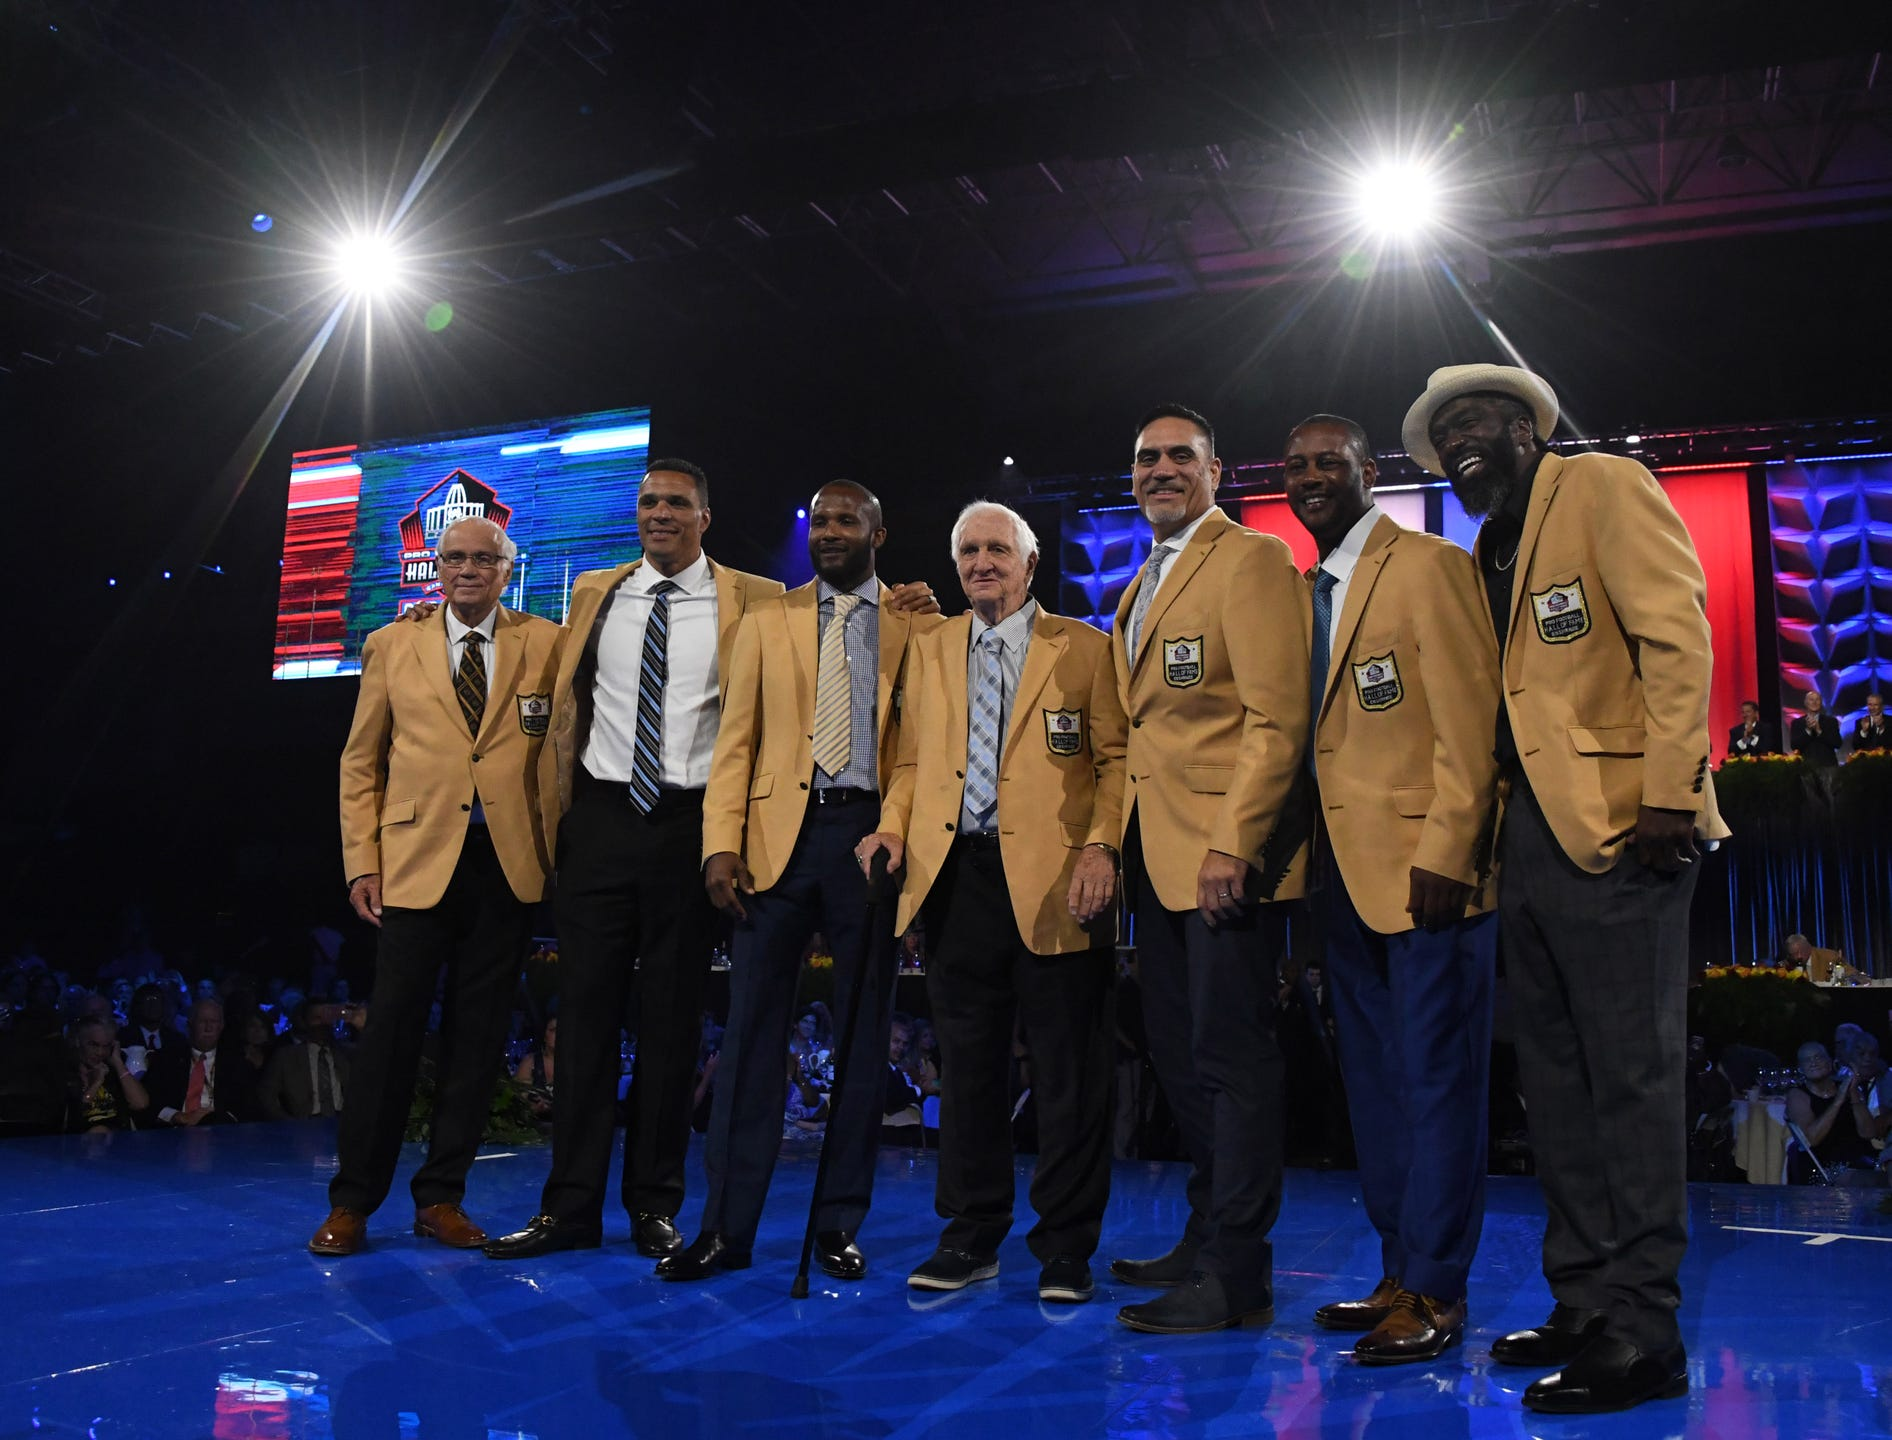 sports shoes 32ad4 5092d Best photos from Pro Football Hall of Fame Gold Jacket Dinner